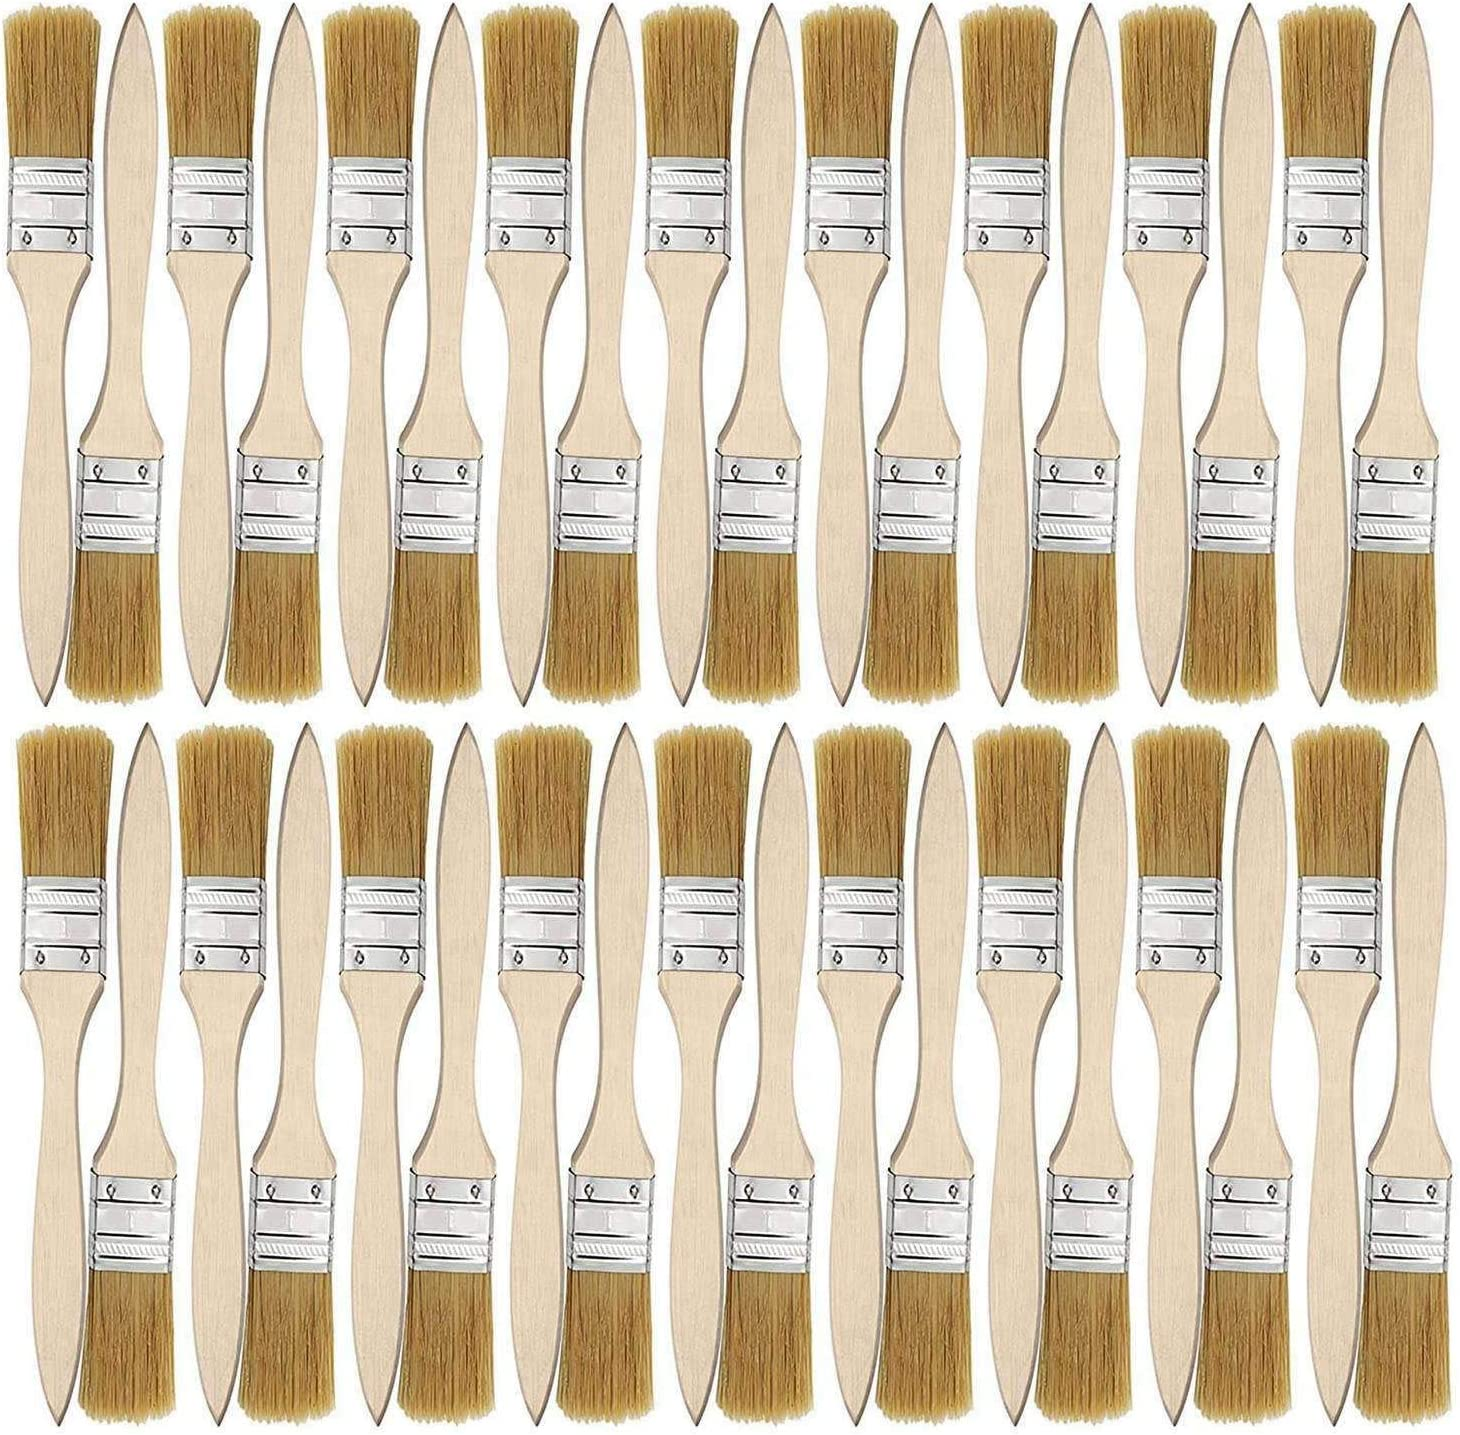 Rfvtgb 36 Pack of 1 Inch discount Chip Paint and Bru 24mm Brushes Ranking TOP4